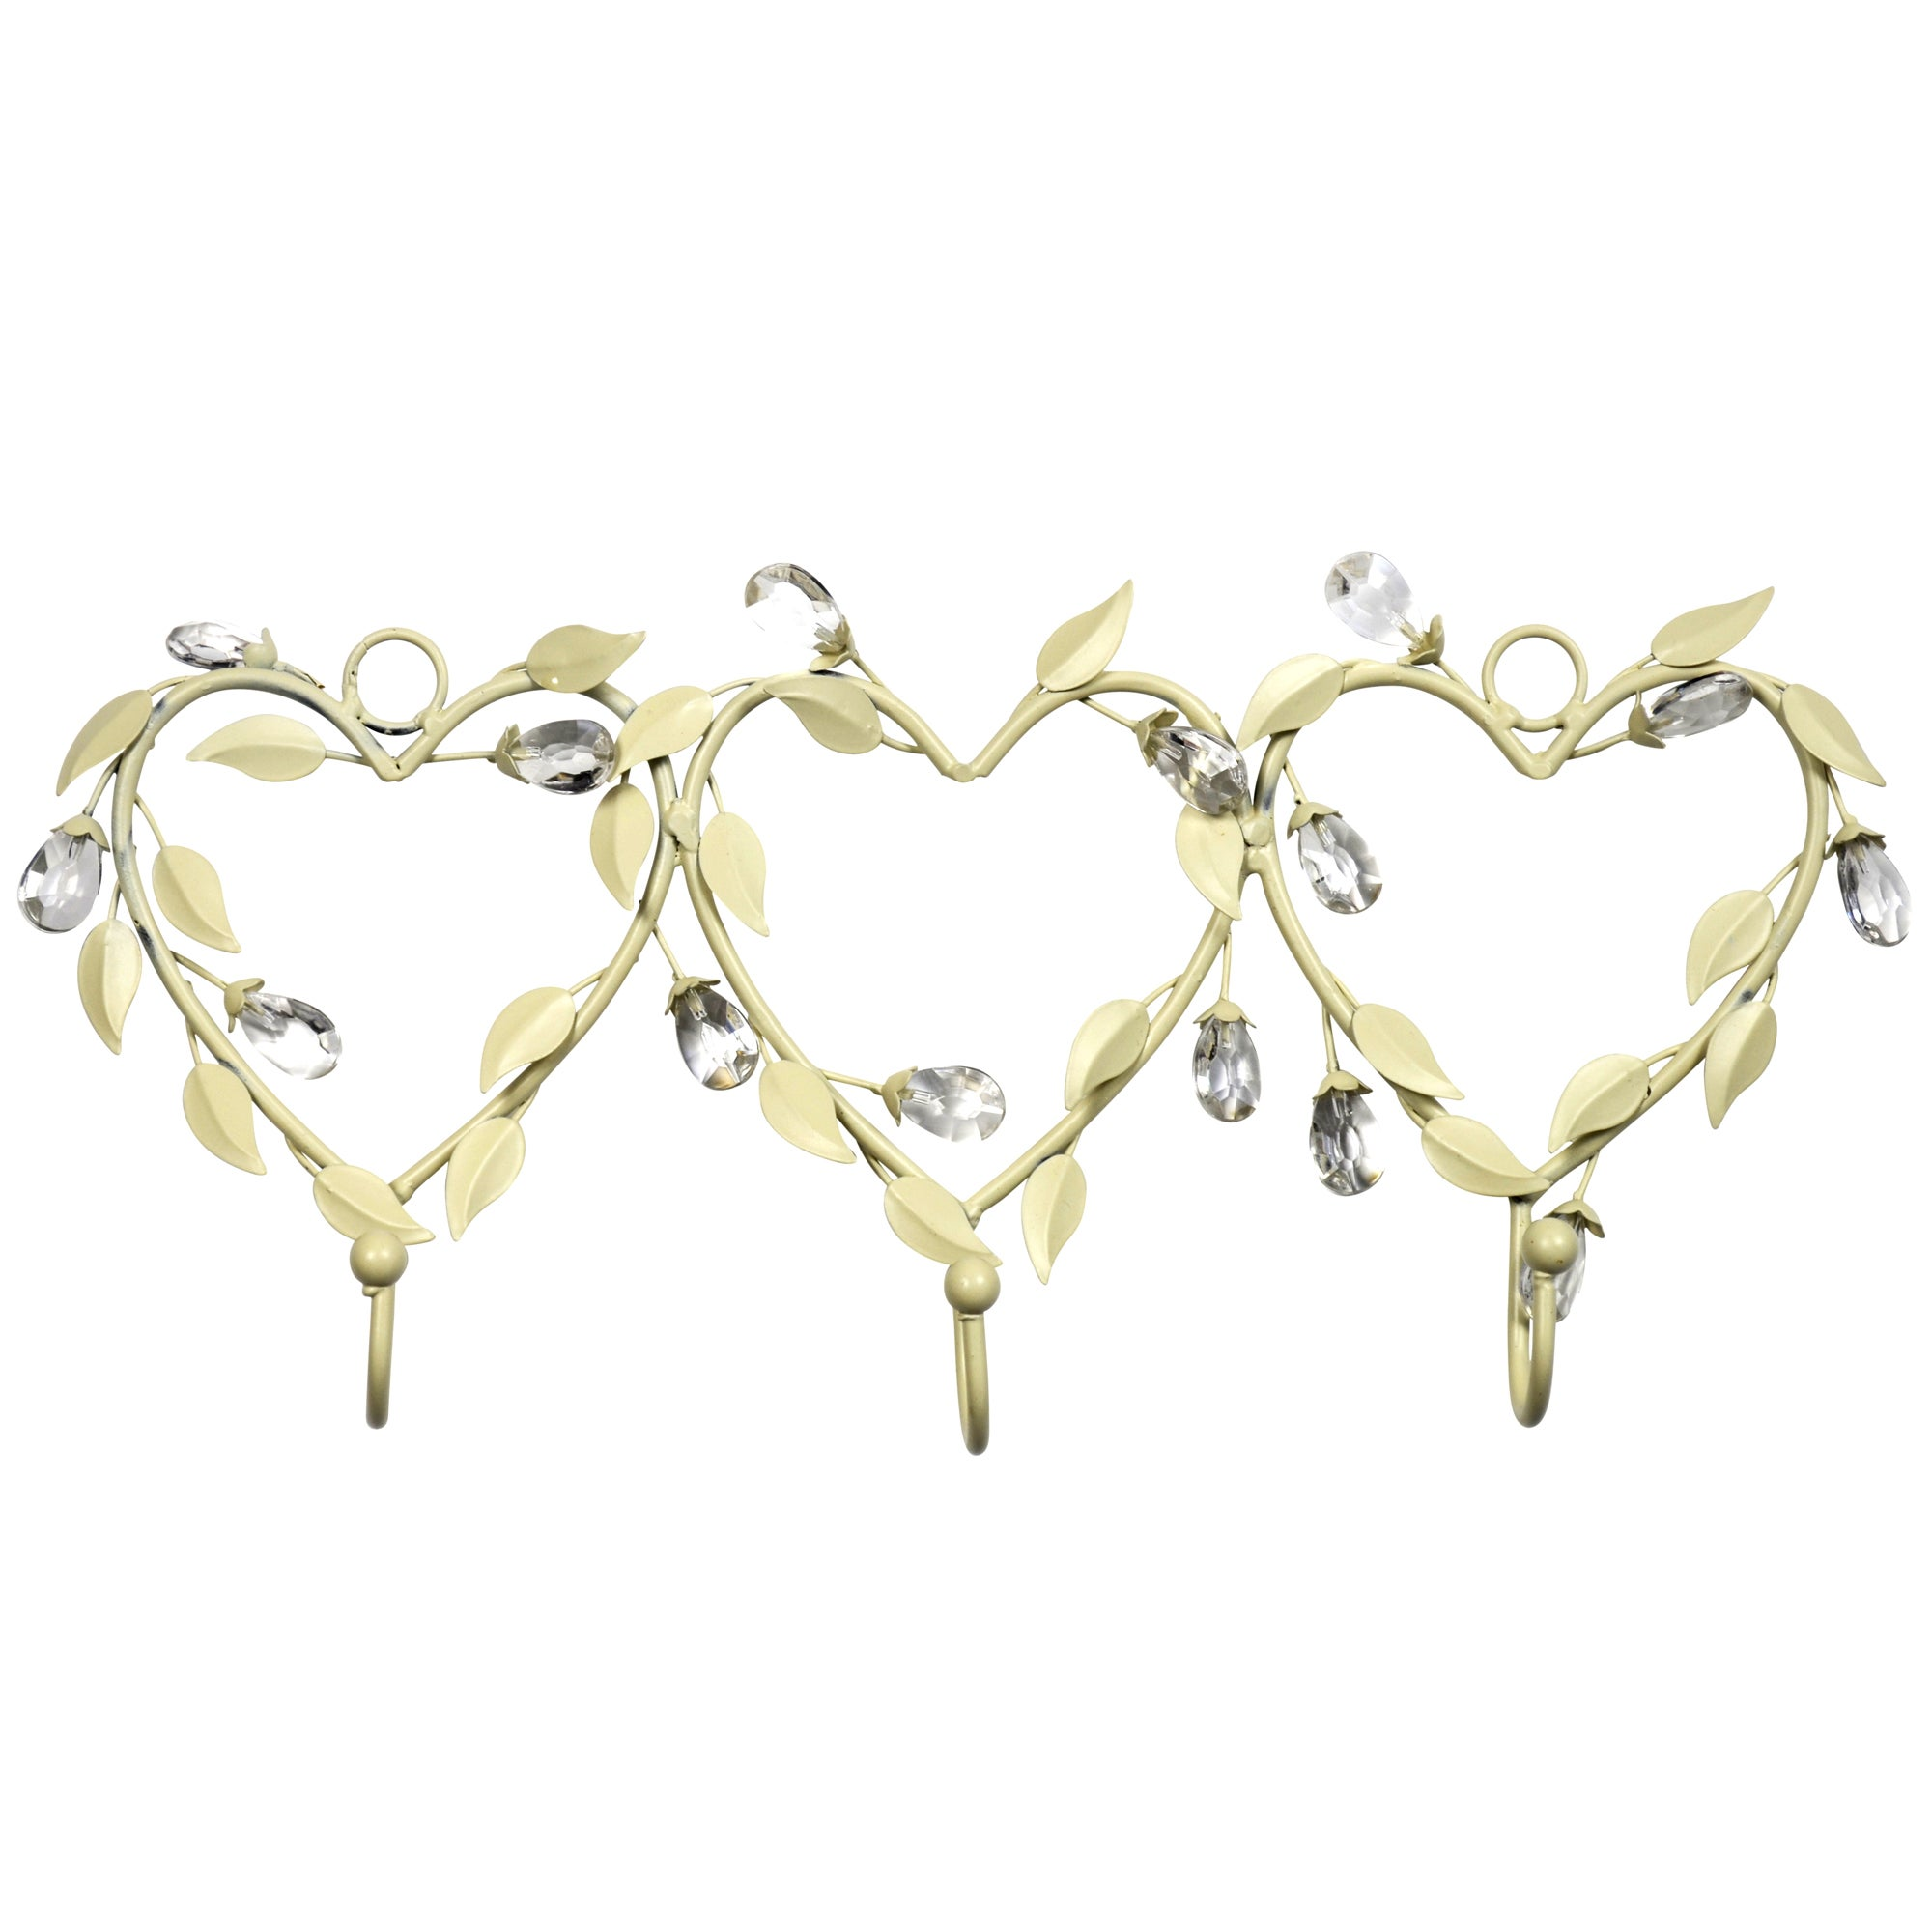 Vintage Collection Set of 3 Heart Shaped Hooks